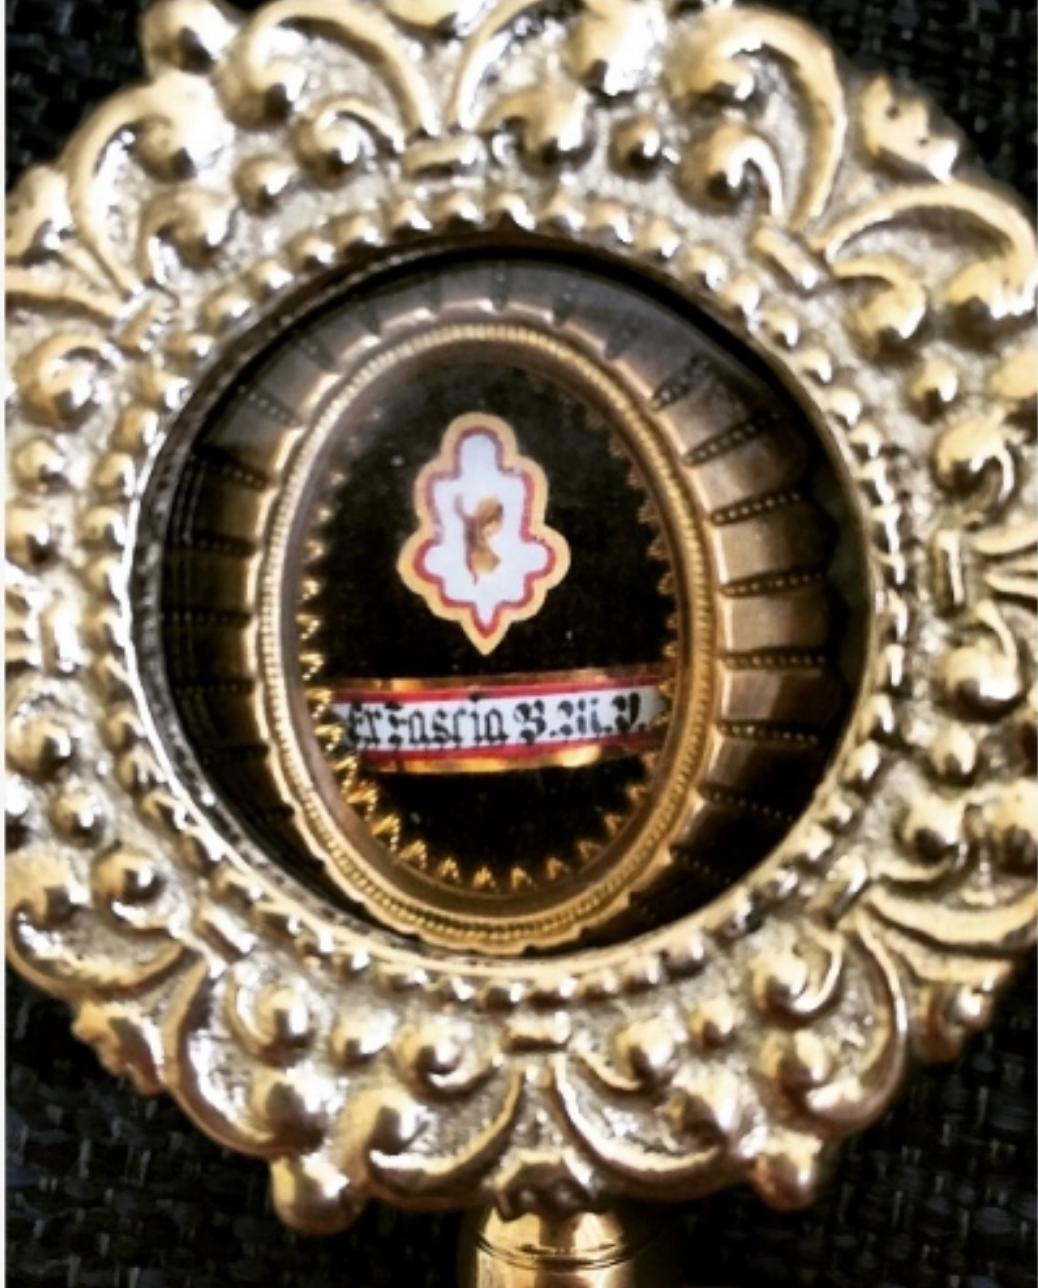 Relic of the Virgin Mary's Sash (Photo: A. VanVickle)